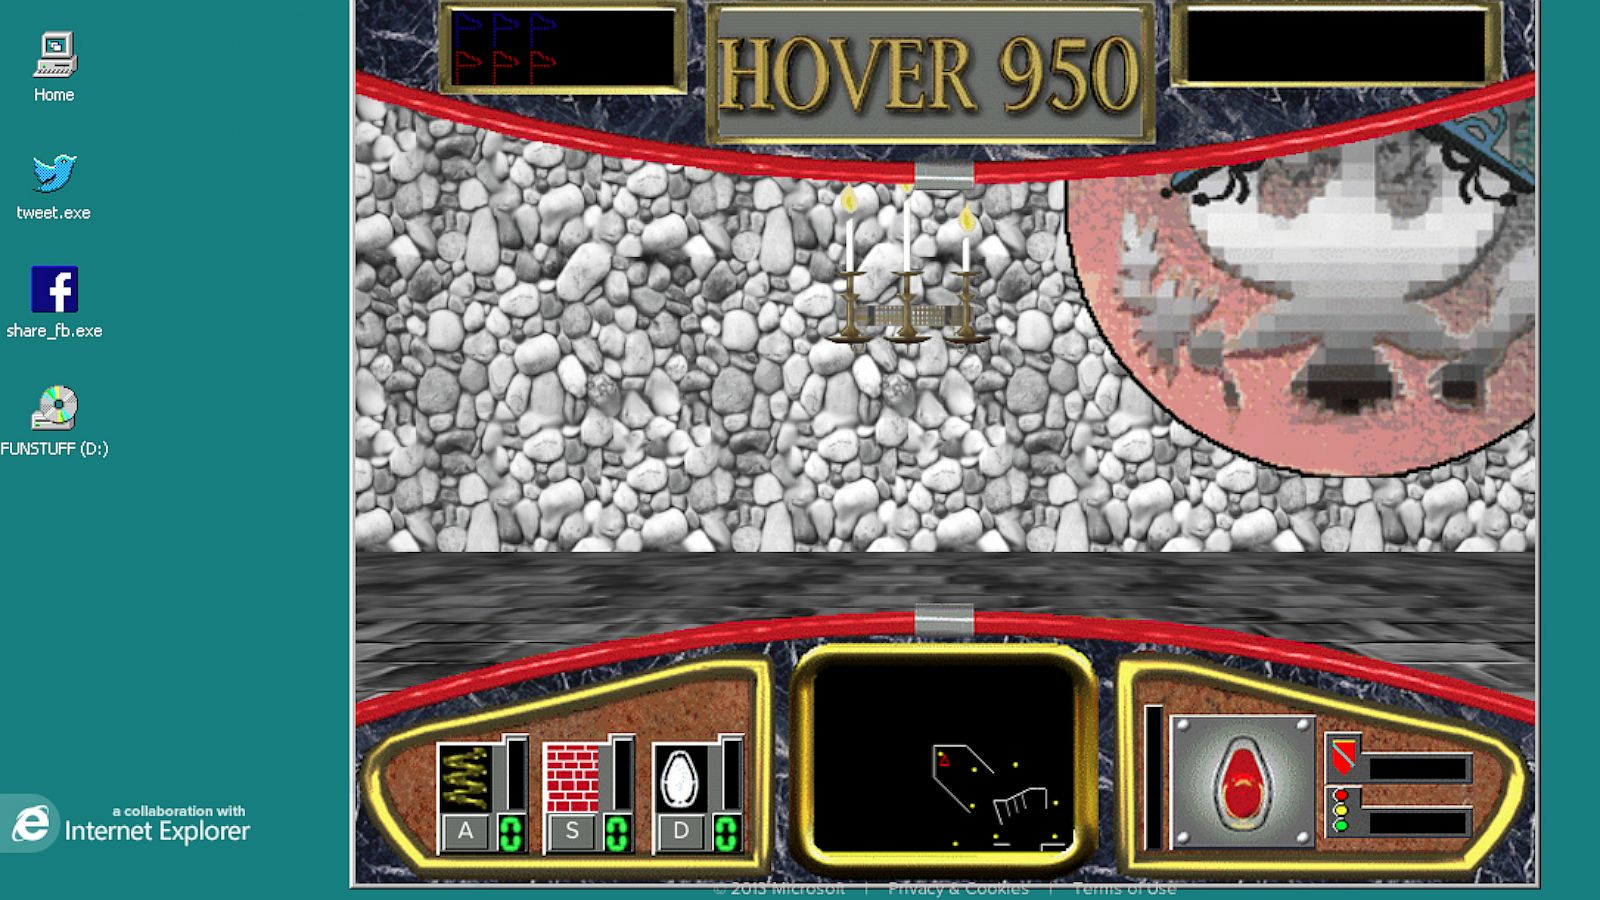 Microsoft Hover: Go Back to Windows 95 with Microsoft's Re-Released